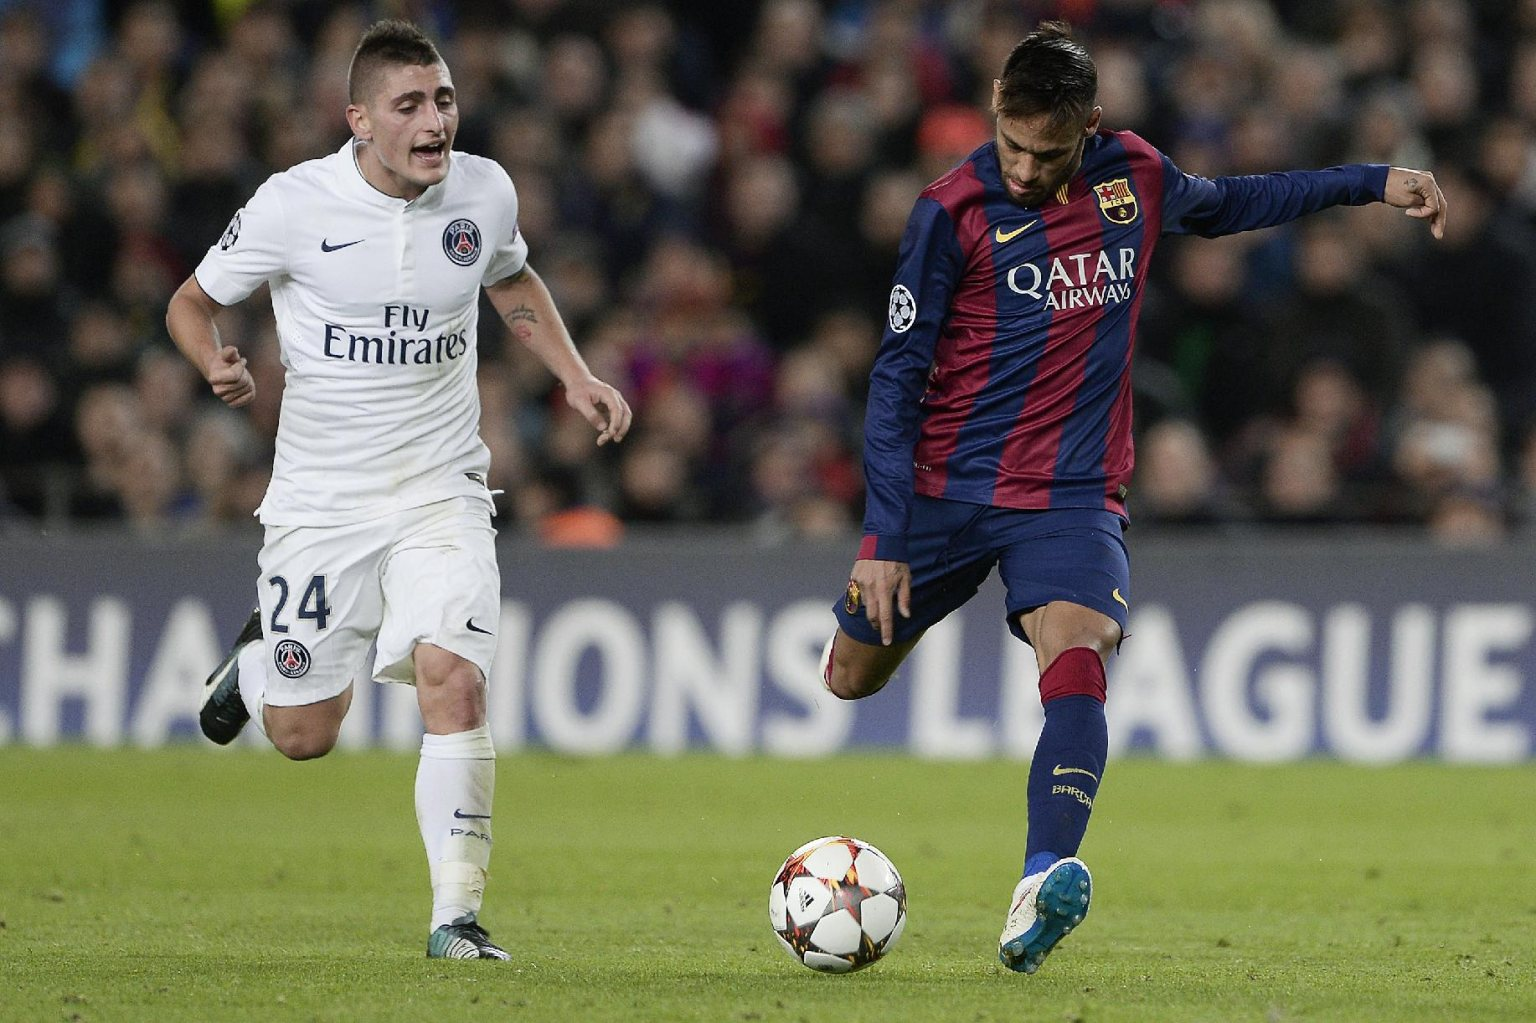 Neymar scoring his goal in Barcelona vs PSG, for the UEFA Champions League